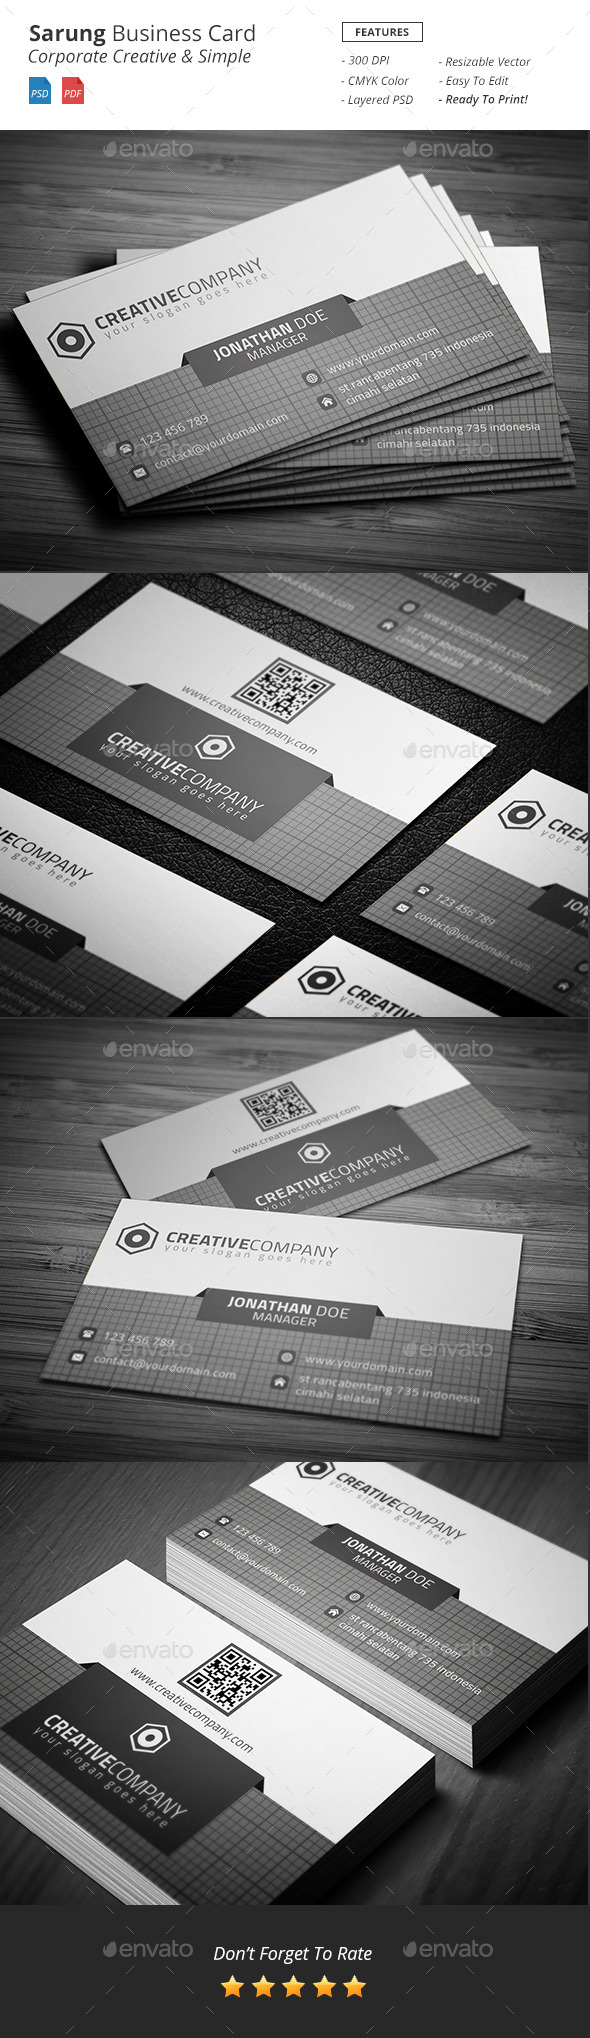 GraphicRiver Sarung Corporate Business Card 11174214